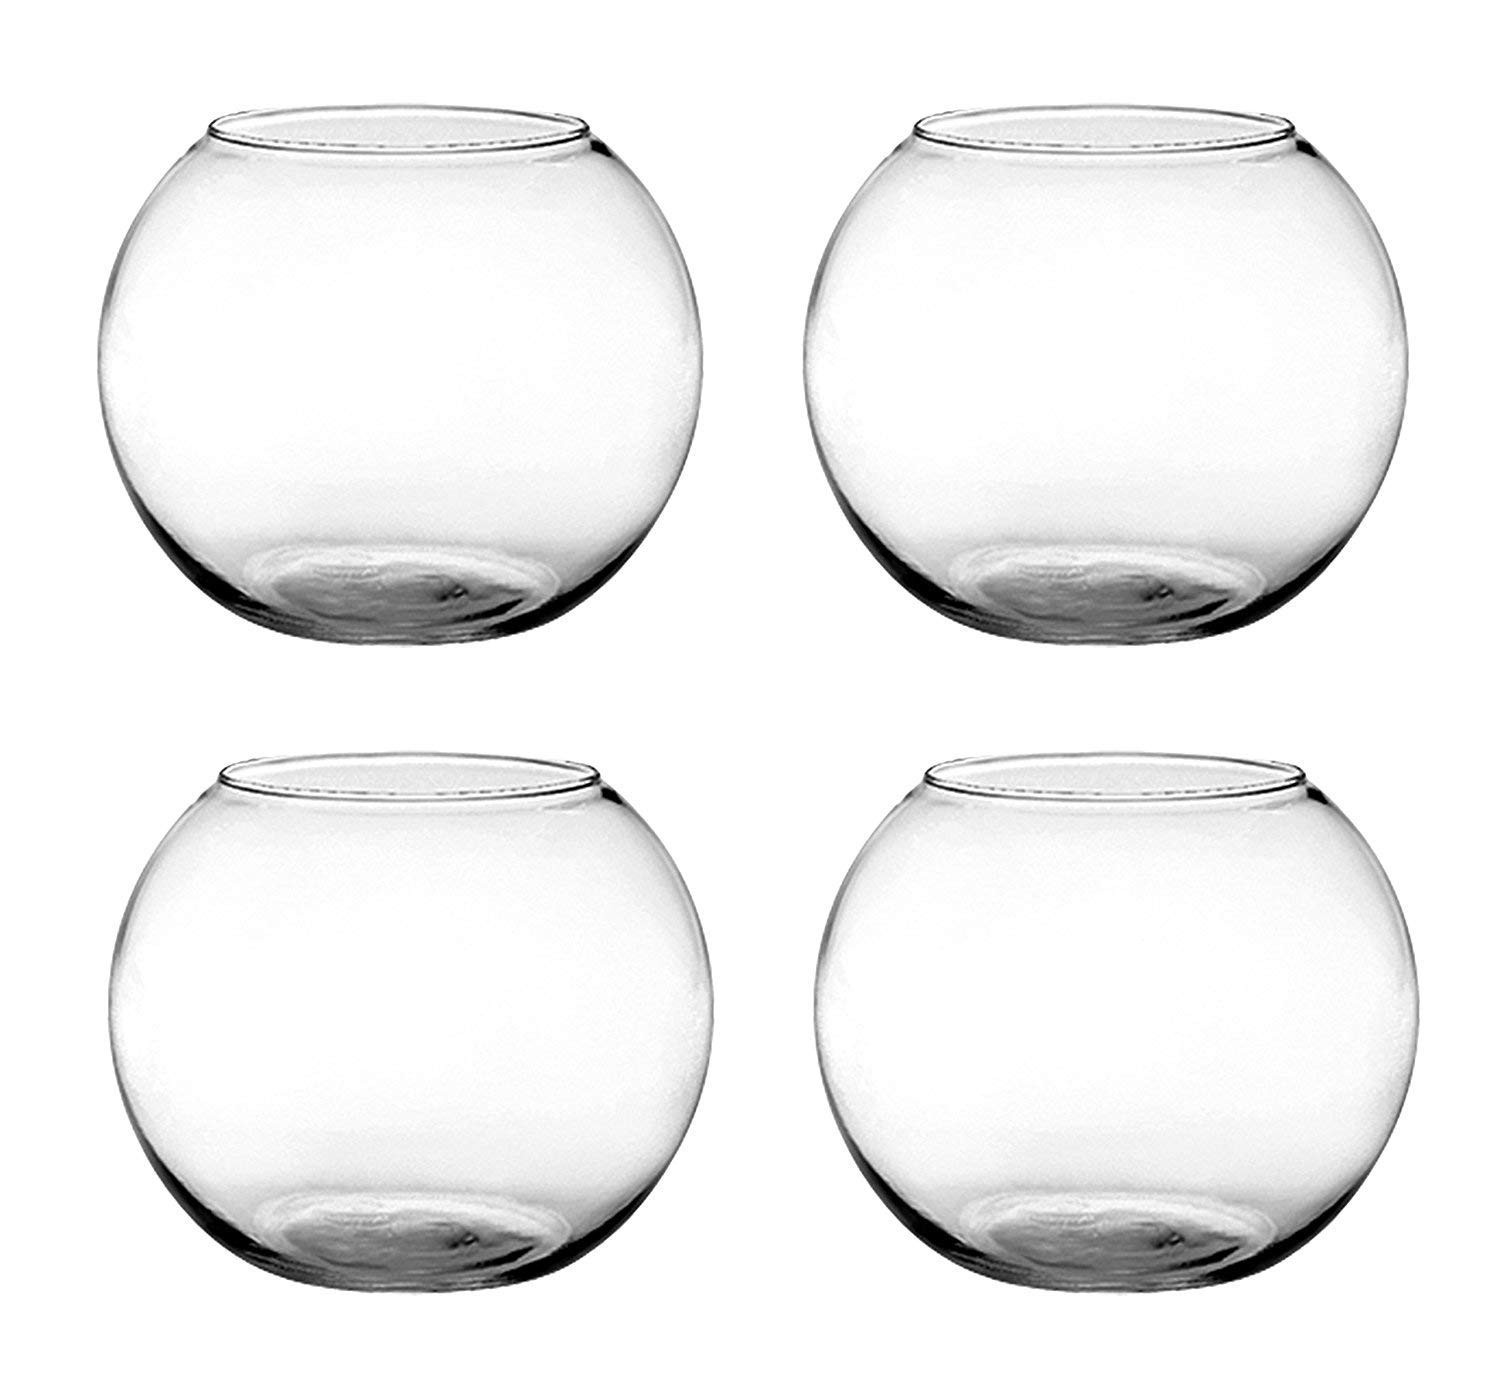 bubble bowl glass vase of amazon com floral supply online set of 4 6 rose bowls glass pertaining to amazon com floral supply online set of 4 6 rose bowls glass round vases for weddings events decorating arrangements flowers office